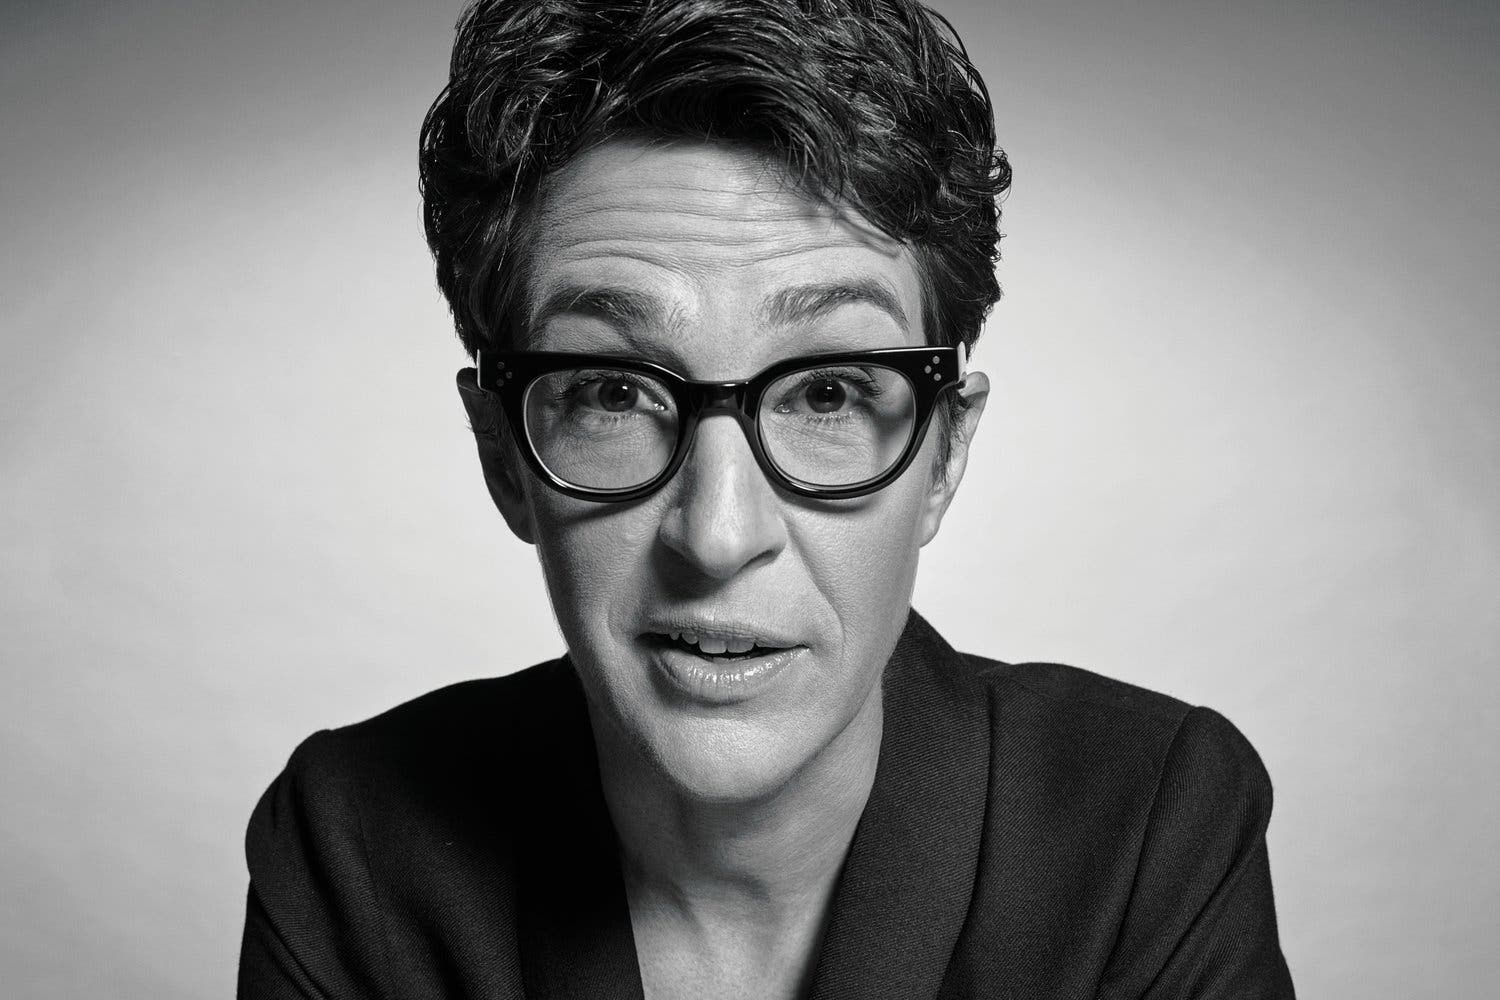 I lose my will': Rachel Maddow uncovers fight with sorrow in new history